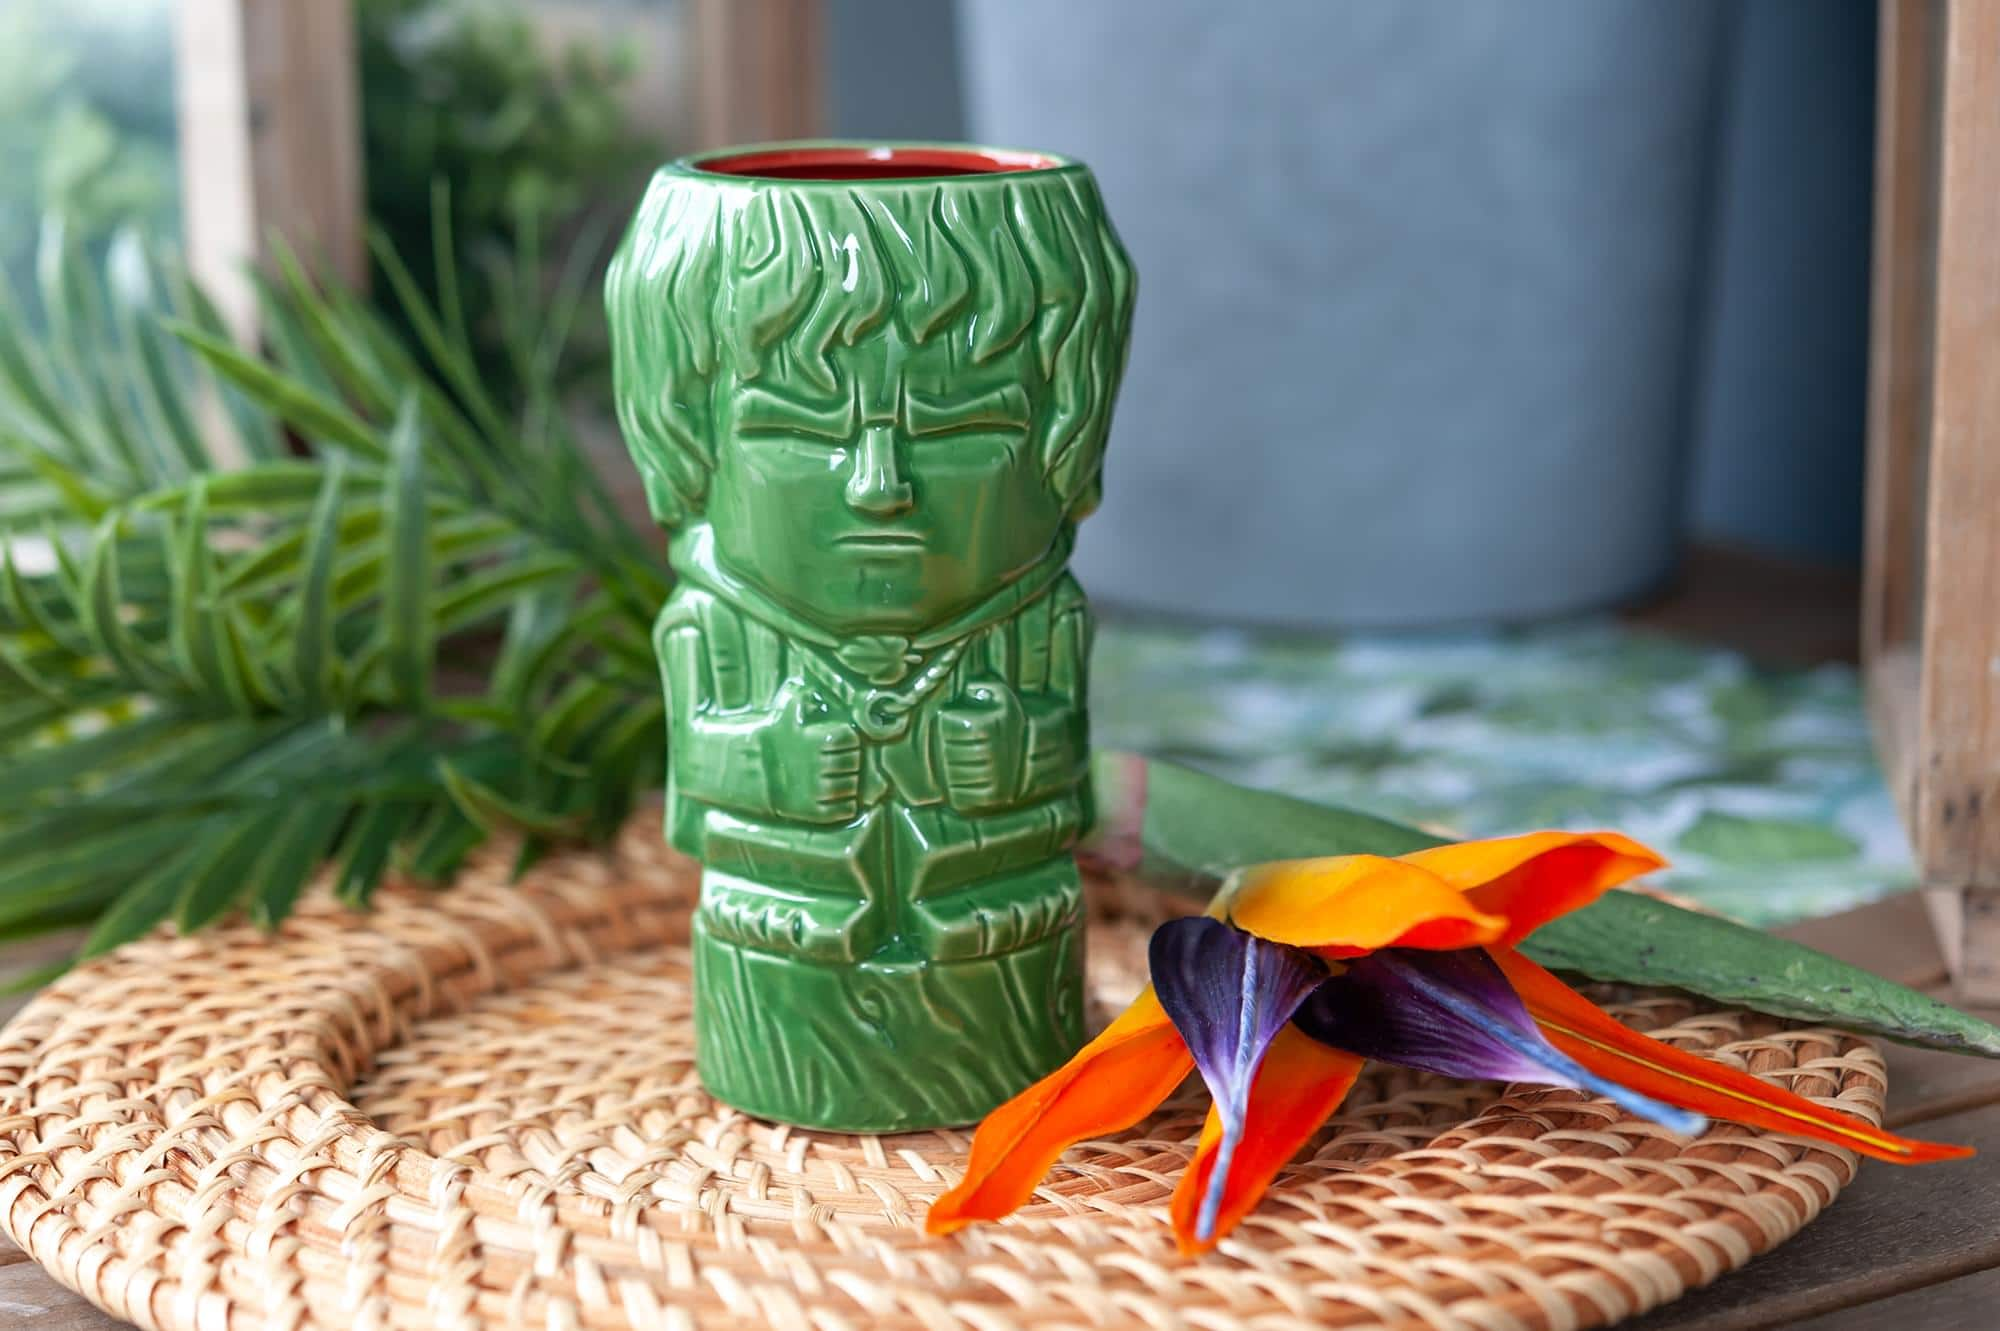 Lord of the Rings Geeki Tikis collection includes Gandalf, Frodo and Gollum mugs 16